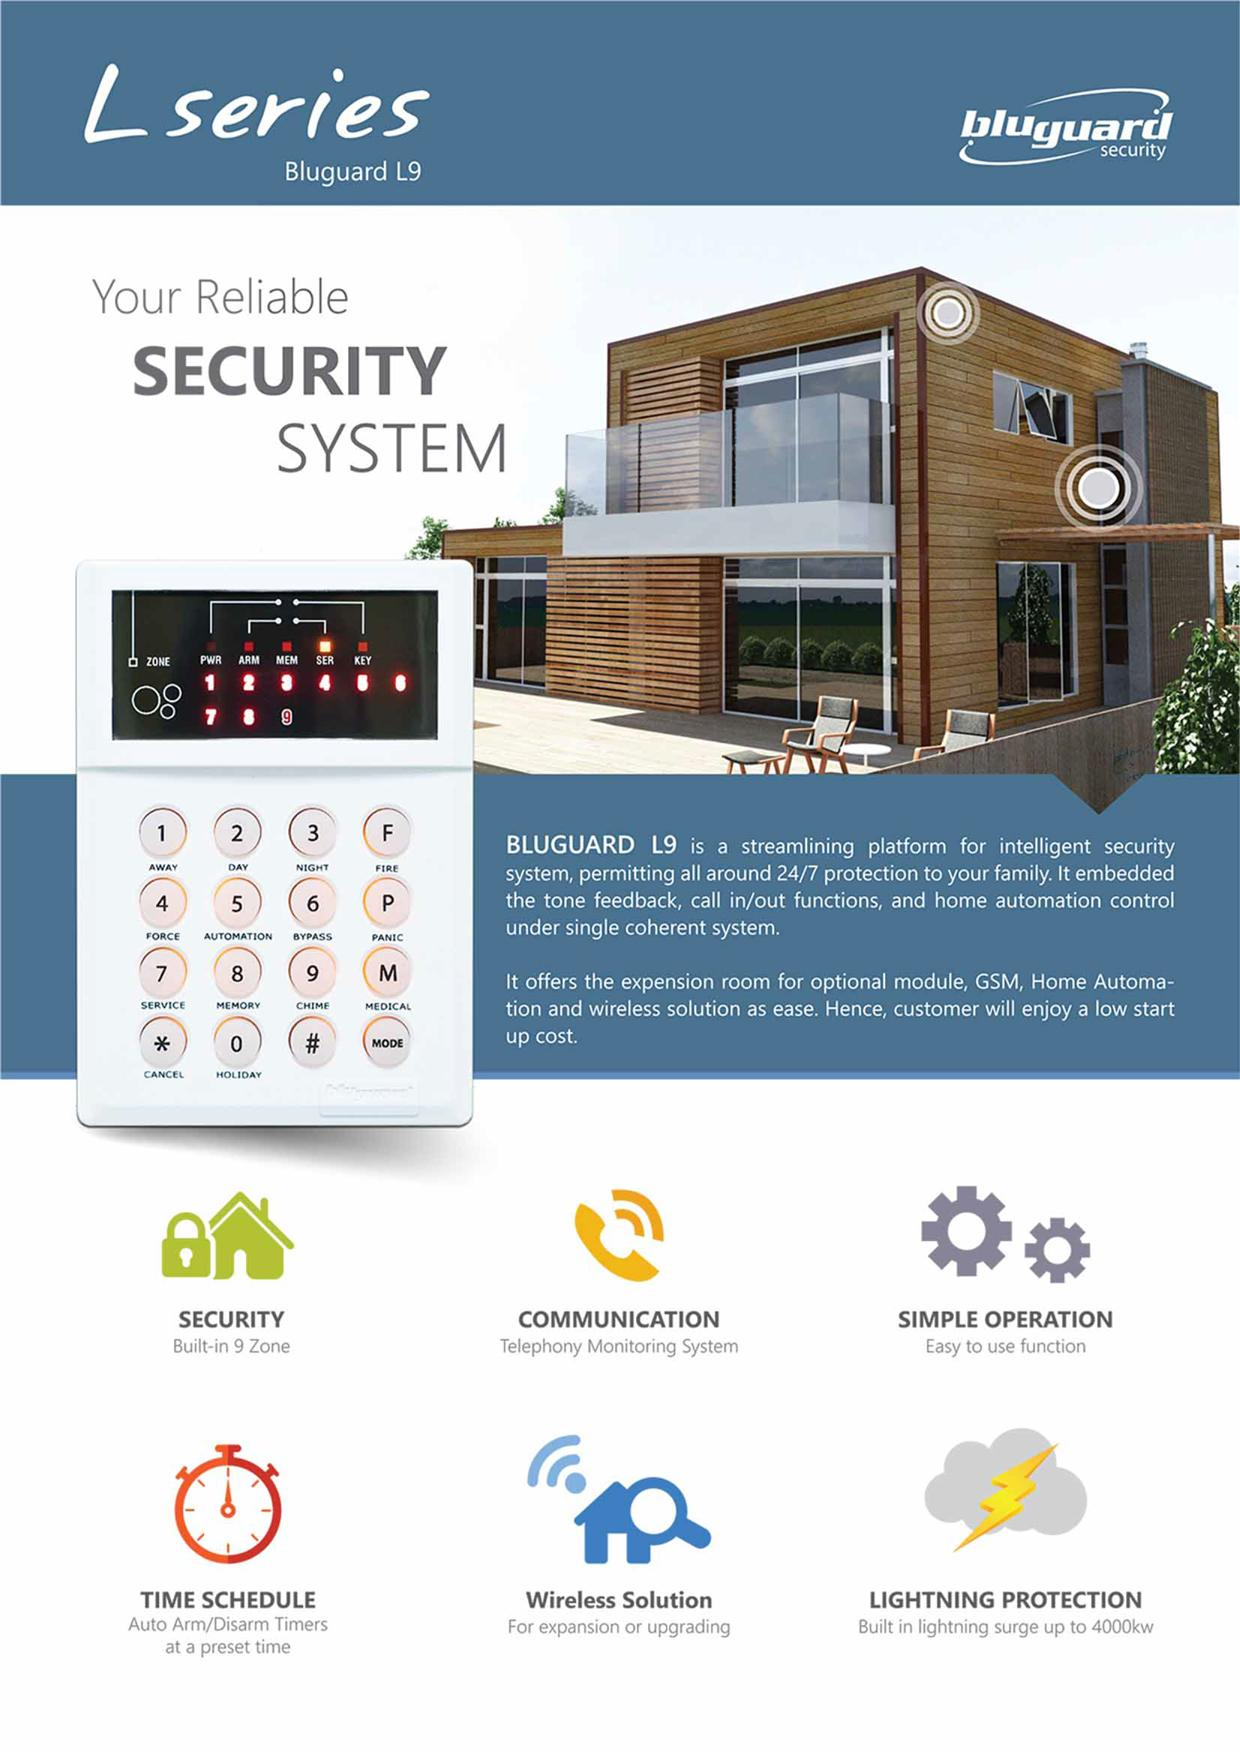 Bluguard Wireless Alarm System Price Malaysia Wire Center Circuit Signalprocessing Diagram Seekiccom For Home Off End 1 11 2019 7 15 Pm Rh Lelong Com My Driveway Security Systems